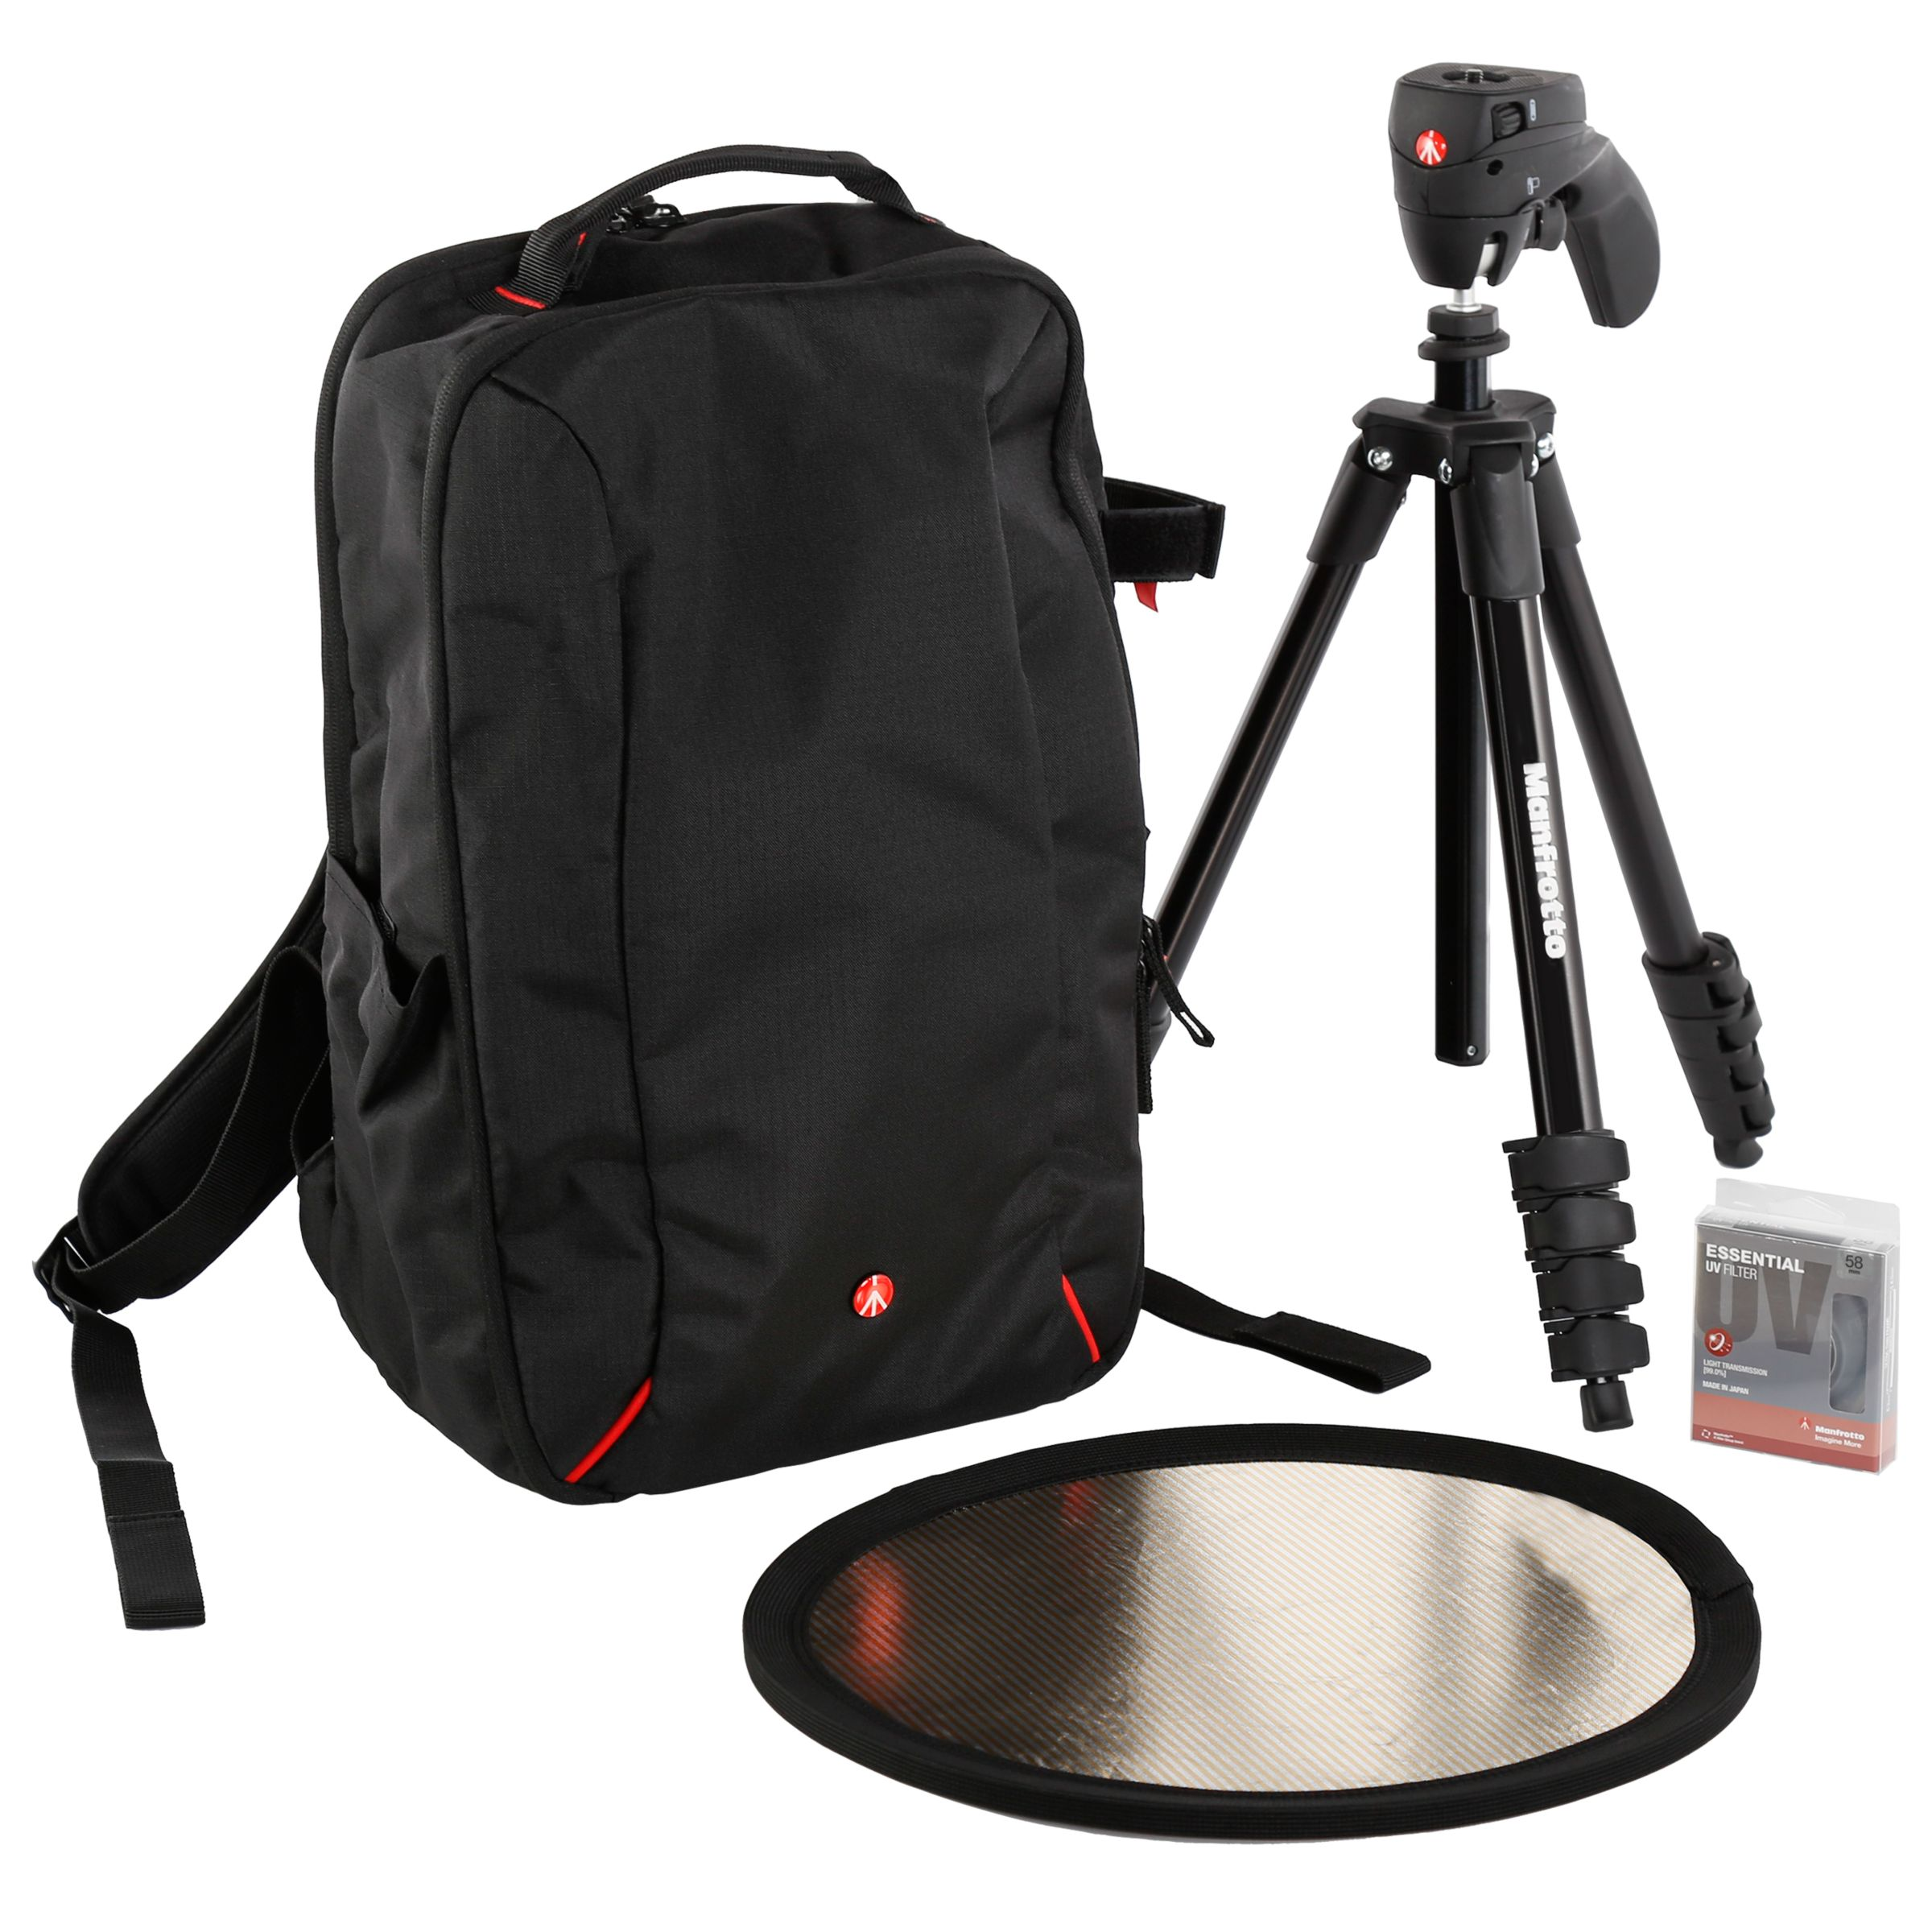 Manfrotto Manfrotto DSLR Accessories Starter Kit for Nikon Cameras with Backpack, Tripod, Reflector & UV Filter